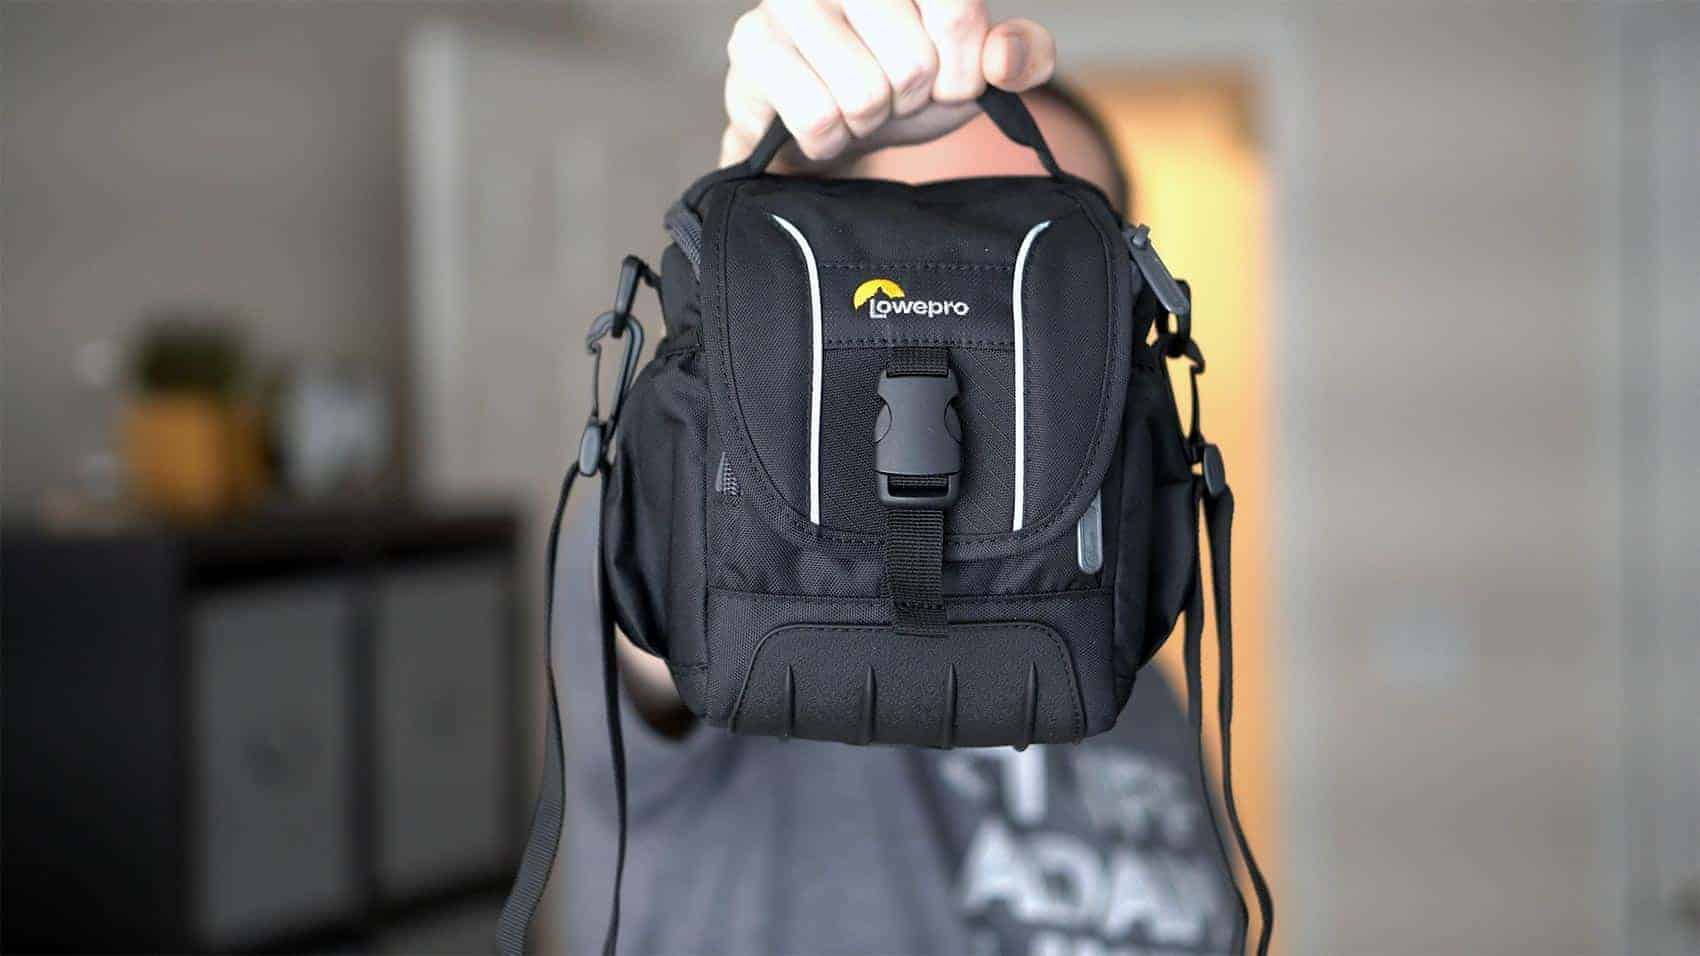 Lowepro Adventura SH 120R II